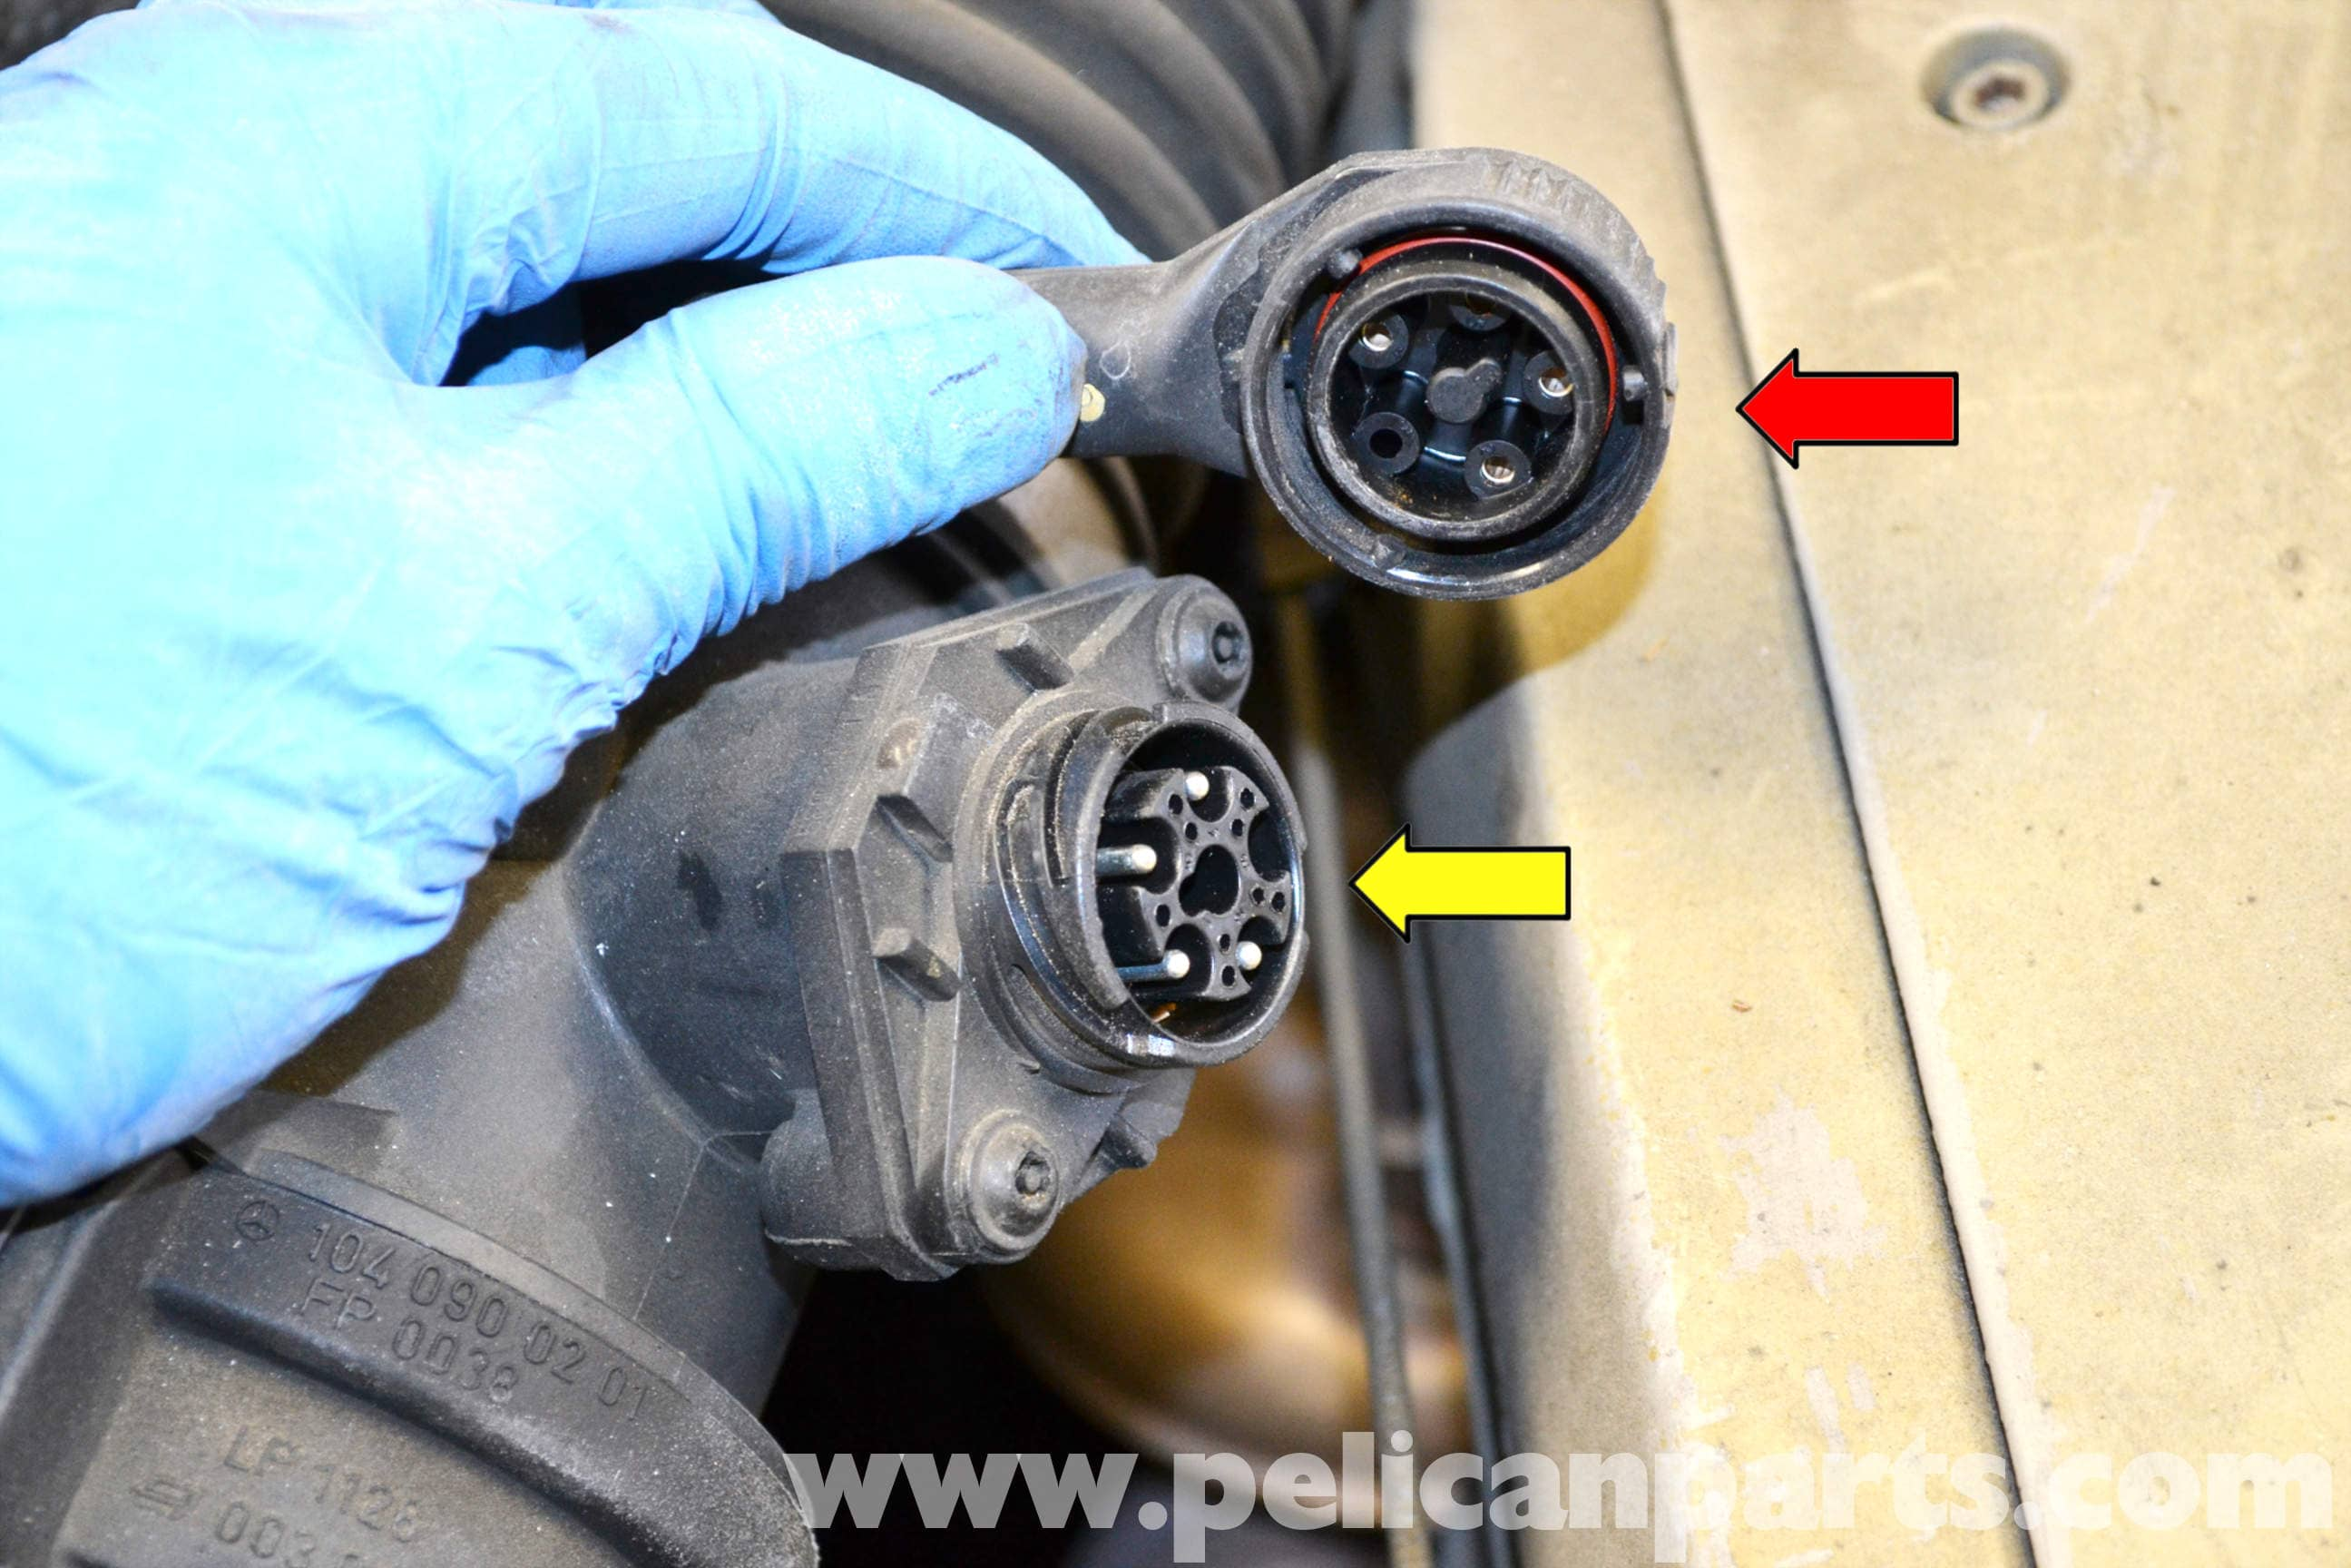 Mercedes-Benz W124 MAF Sensor Replacement | 1986-1995 E-Cl ... on mercedes wire color codes, mercedes timing marks, mercedes wiring color, international wiring diagram, taylor wiring diagram, toyota wiring diagram, vw wiring diagram, mercedes speedometer, mercedes-benz diagram, honda wiring diagram, mercury wiring diagram, nissan wiring diagram, kia wiring diagram, chevrolet wiring diagram, dayton wiring diagram, mercedes firing order, naza wiring diagram, dodge wiring diagram, mercedes electrical diagrams, freightliner wiring diagram,